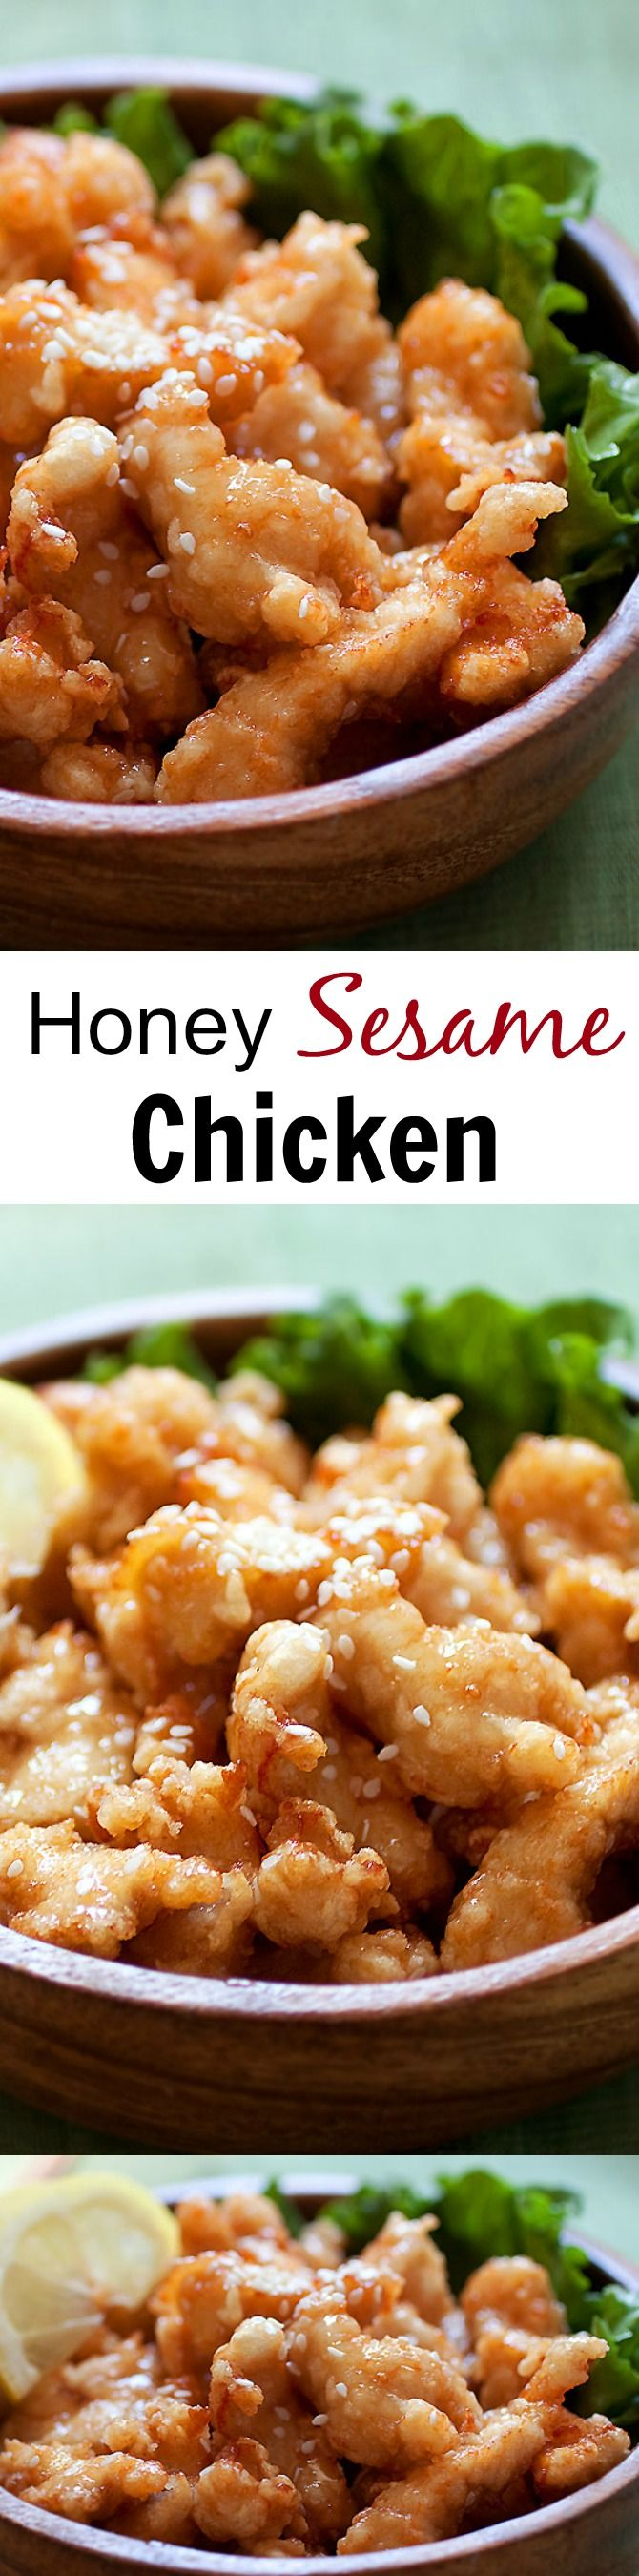 Honey sesame chicken - the easiest and crazy delicious chicken recipe in a sticky sweet and savory honey sesame sauce that you just can't stop eating | rasamalaysia.com